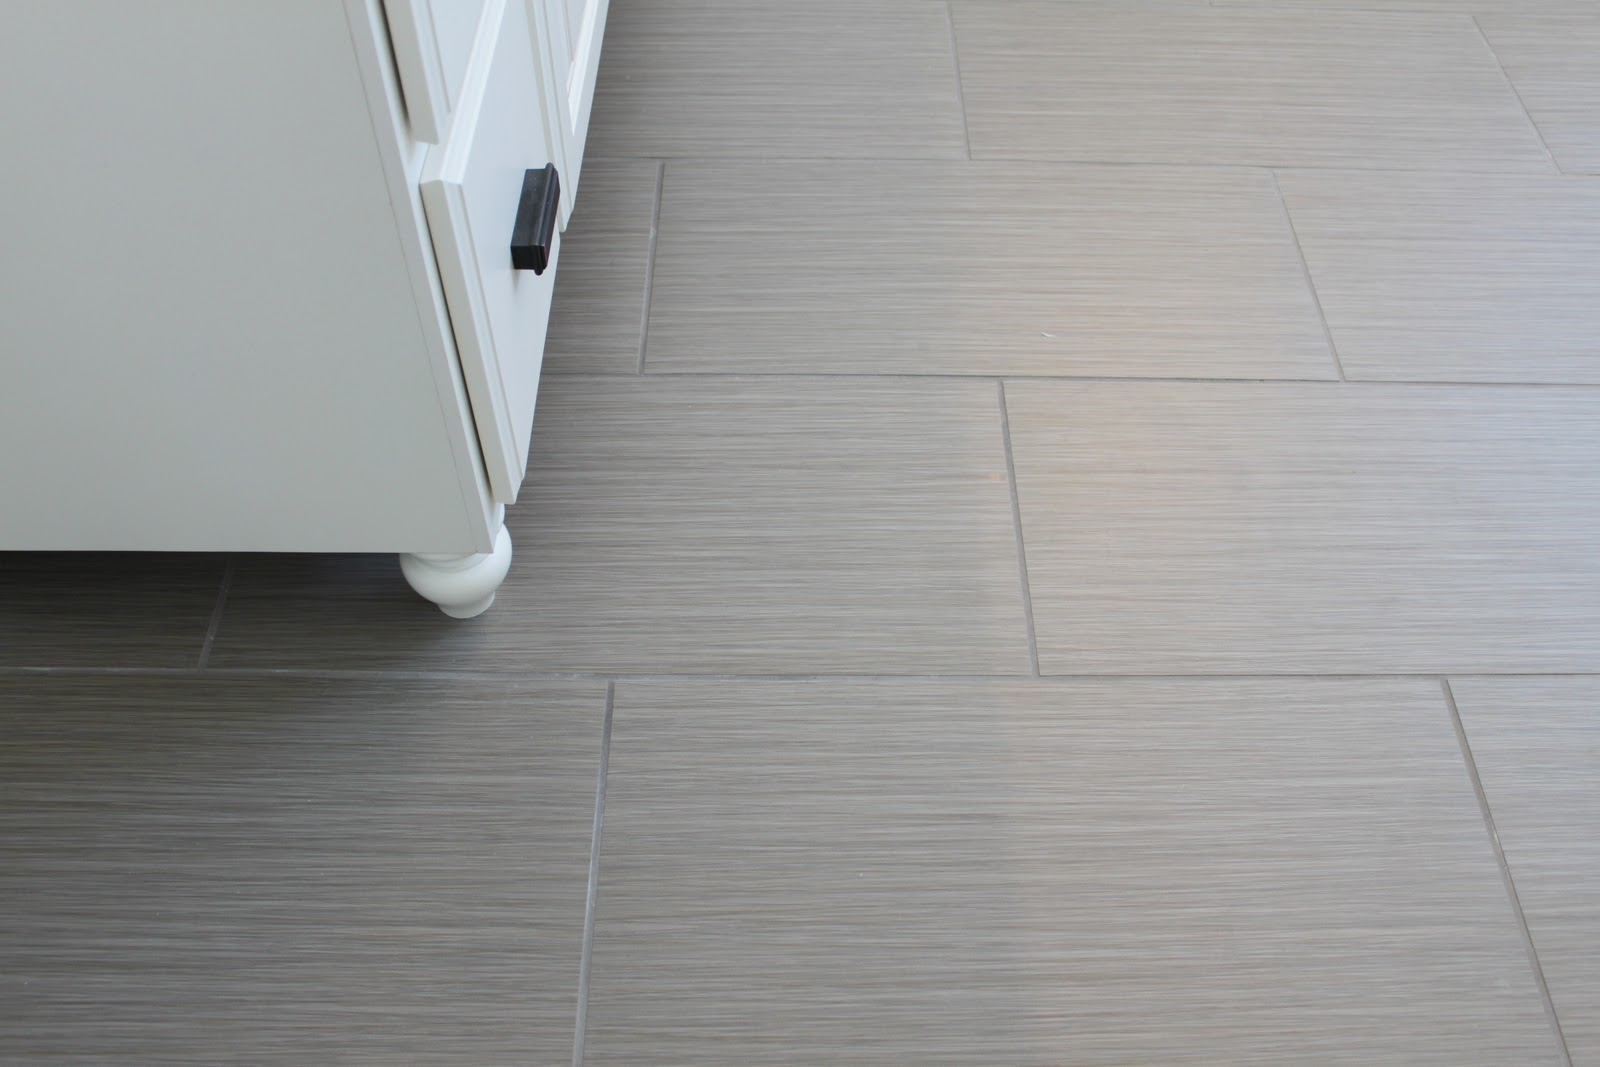 Images Of 12x24 Ceramic Floor Tile